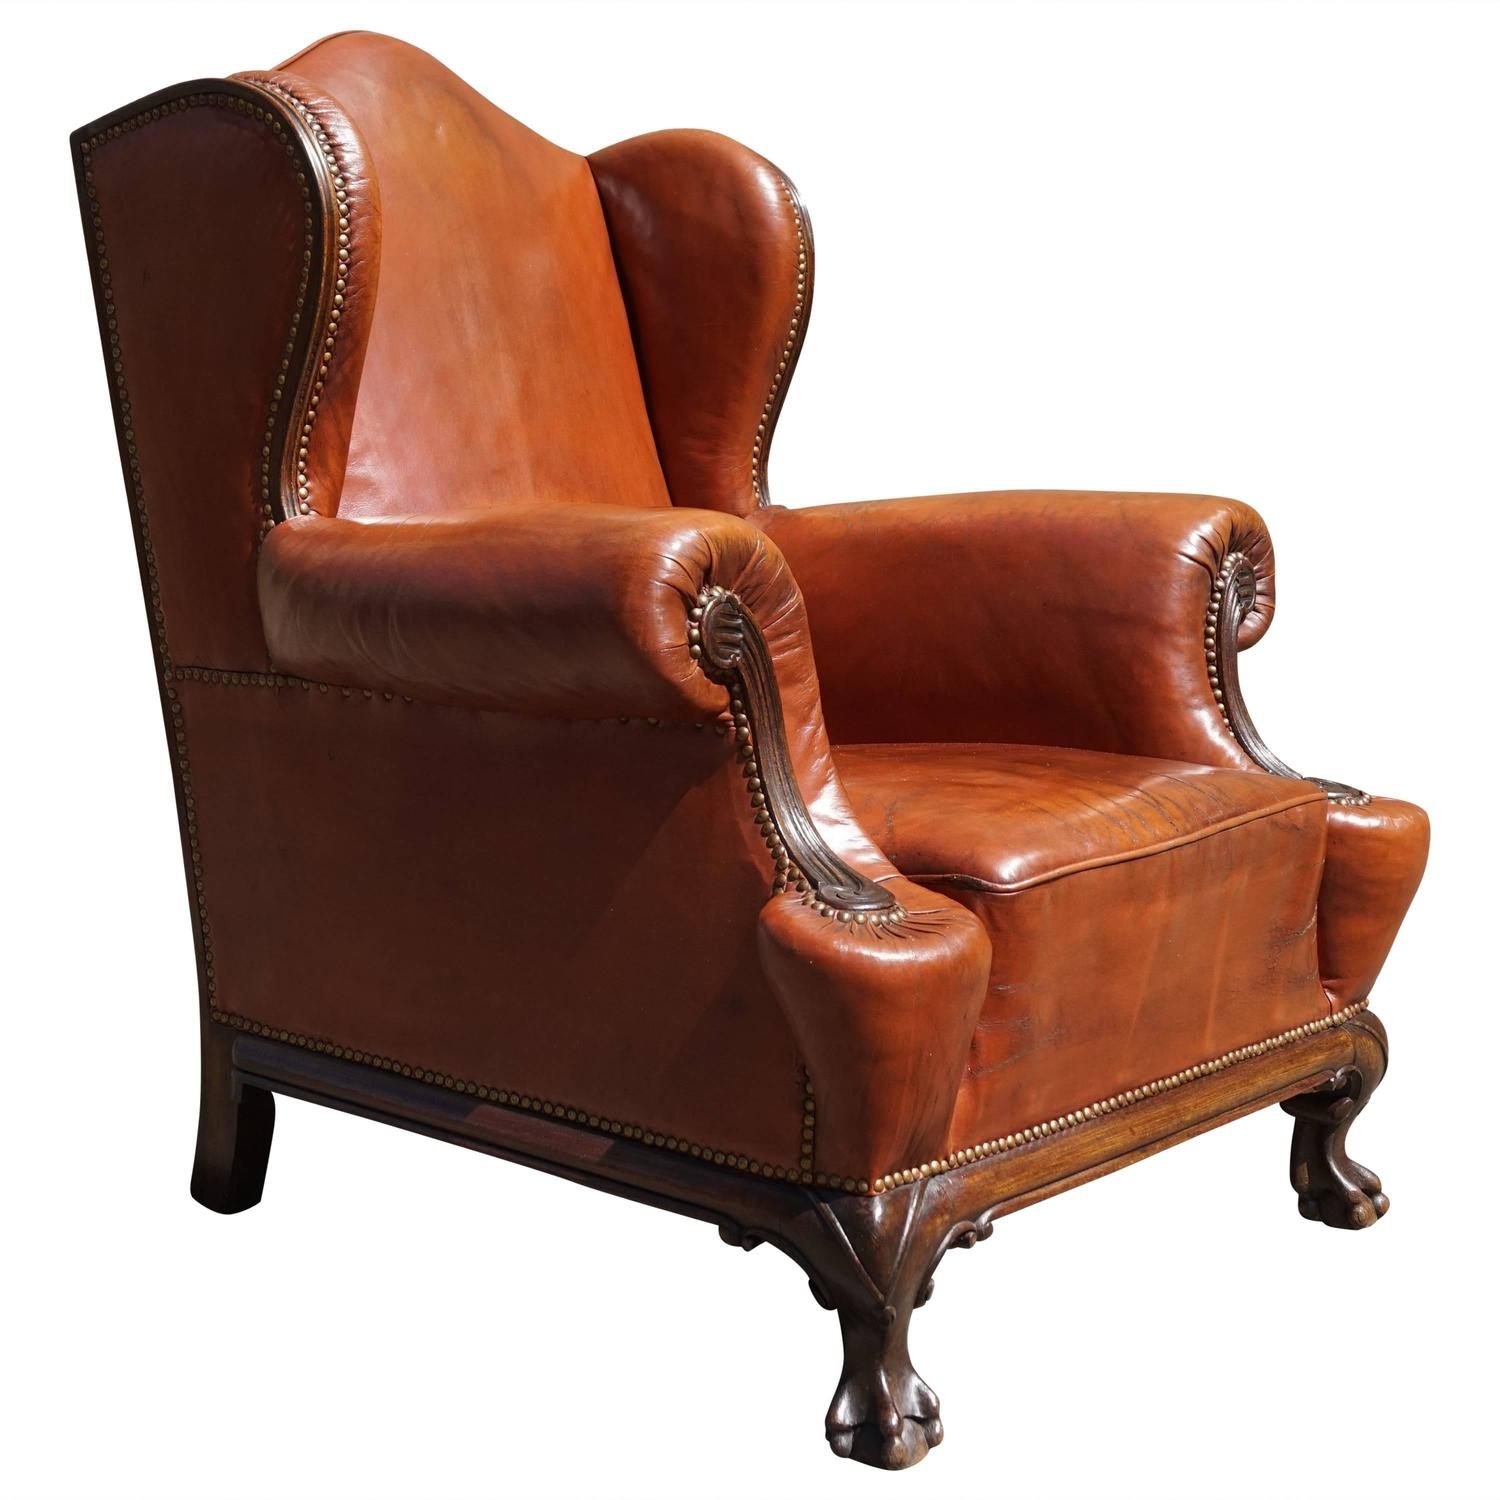 Antique wingback chairs - Antique Leather Chippendale Style Wingback Chair With Hand Carved Claw Feet